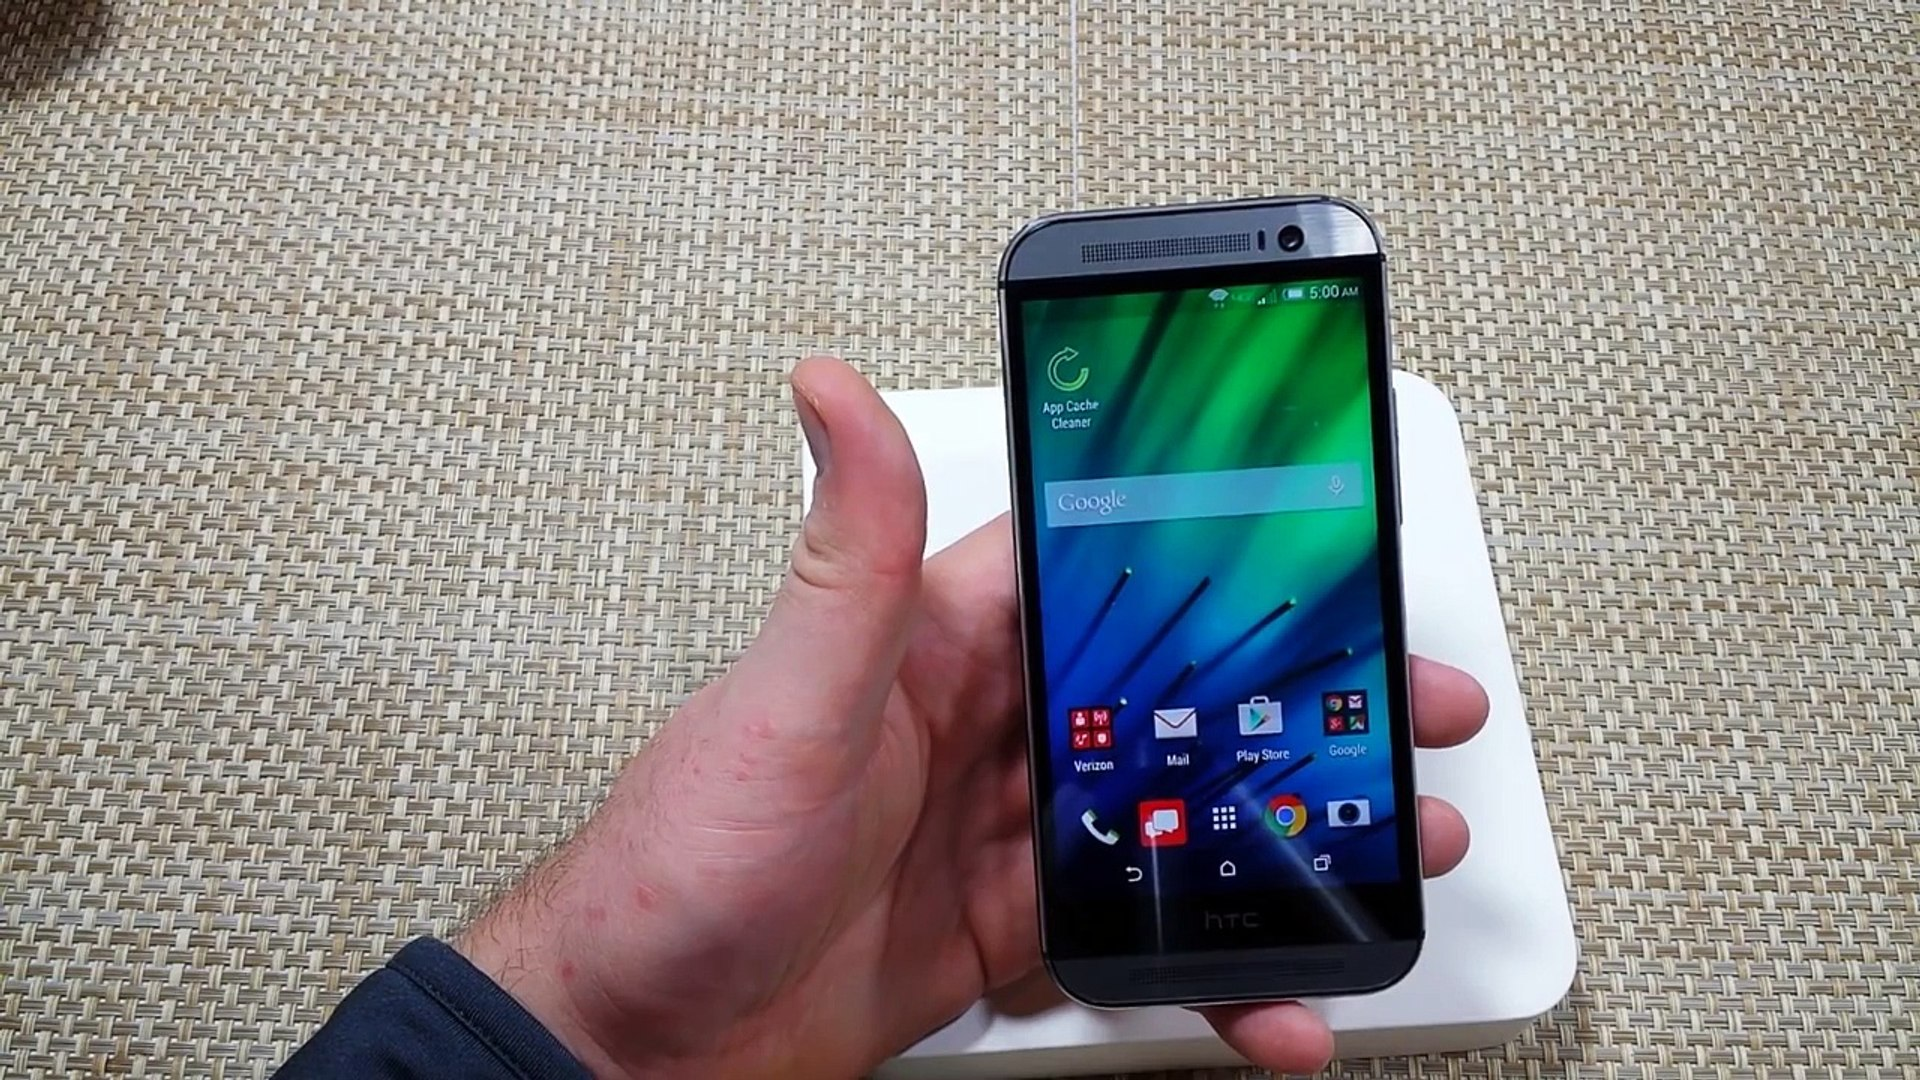 FIX HTC One (M8) Freezing Lagging Slow overheating or non responsive How to  speed it up